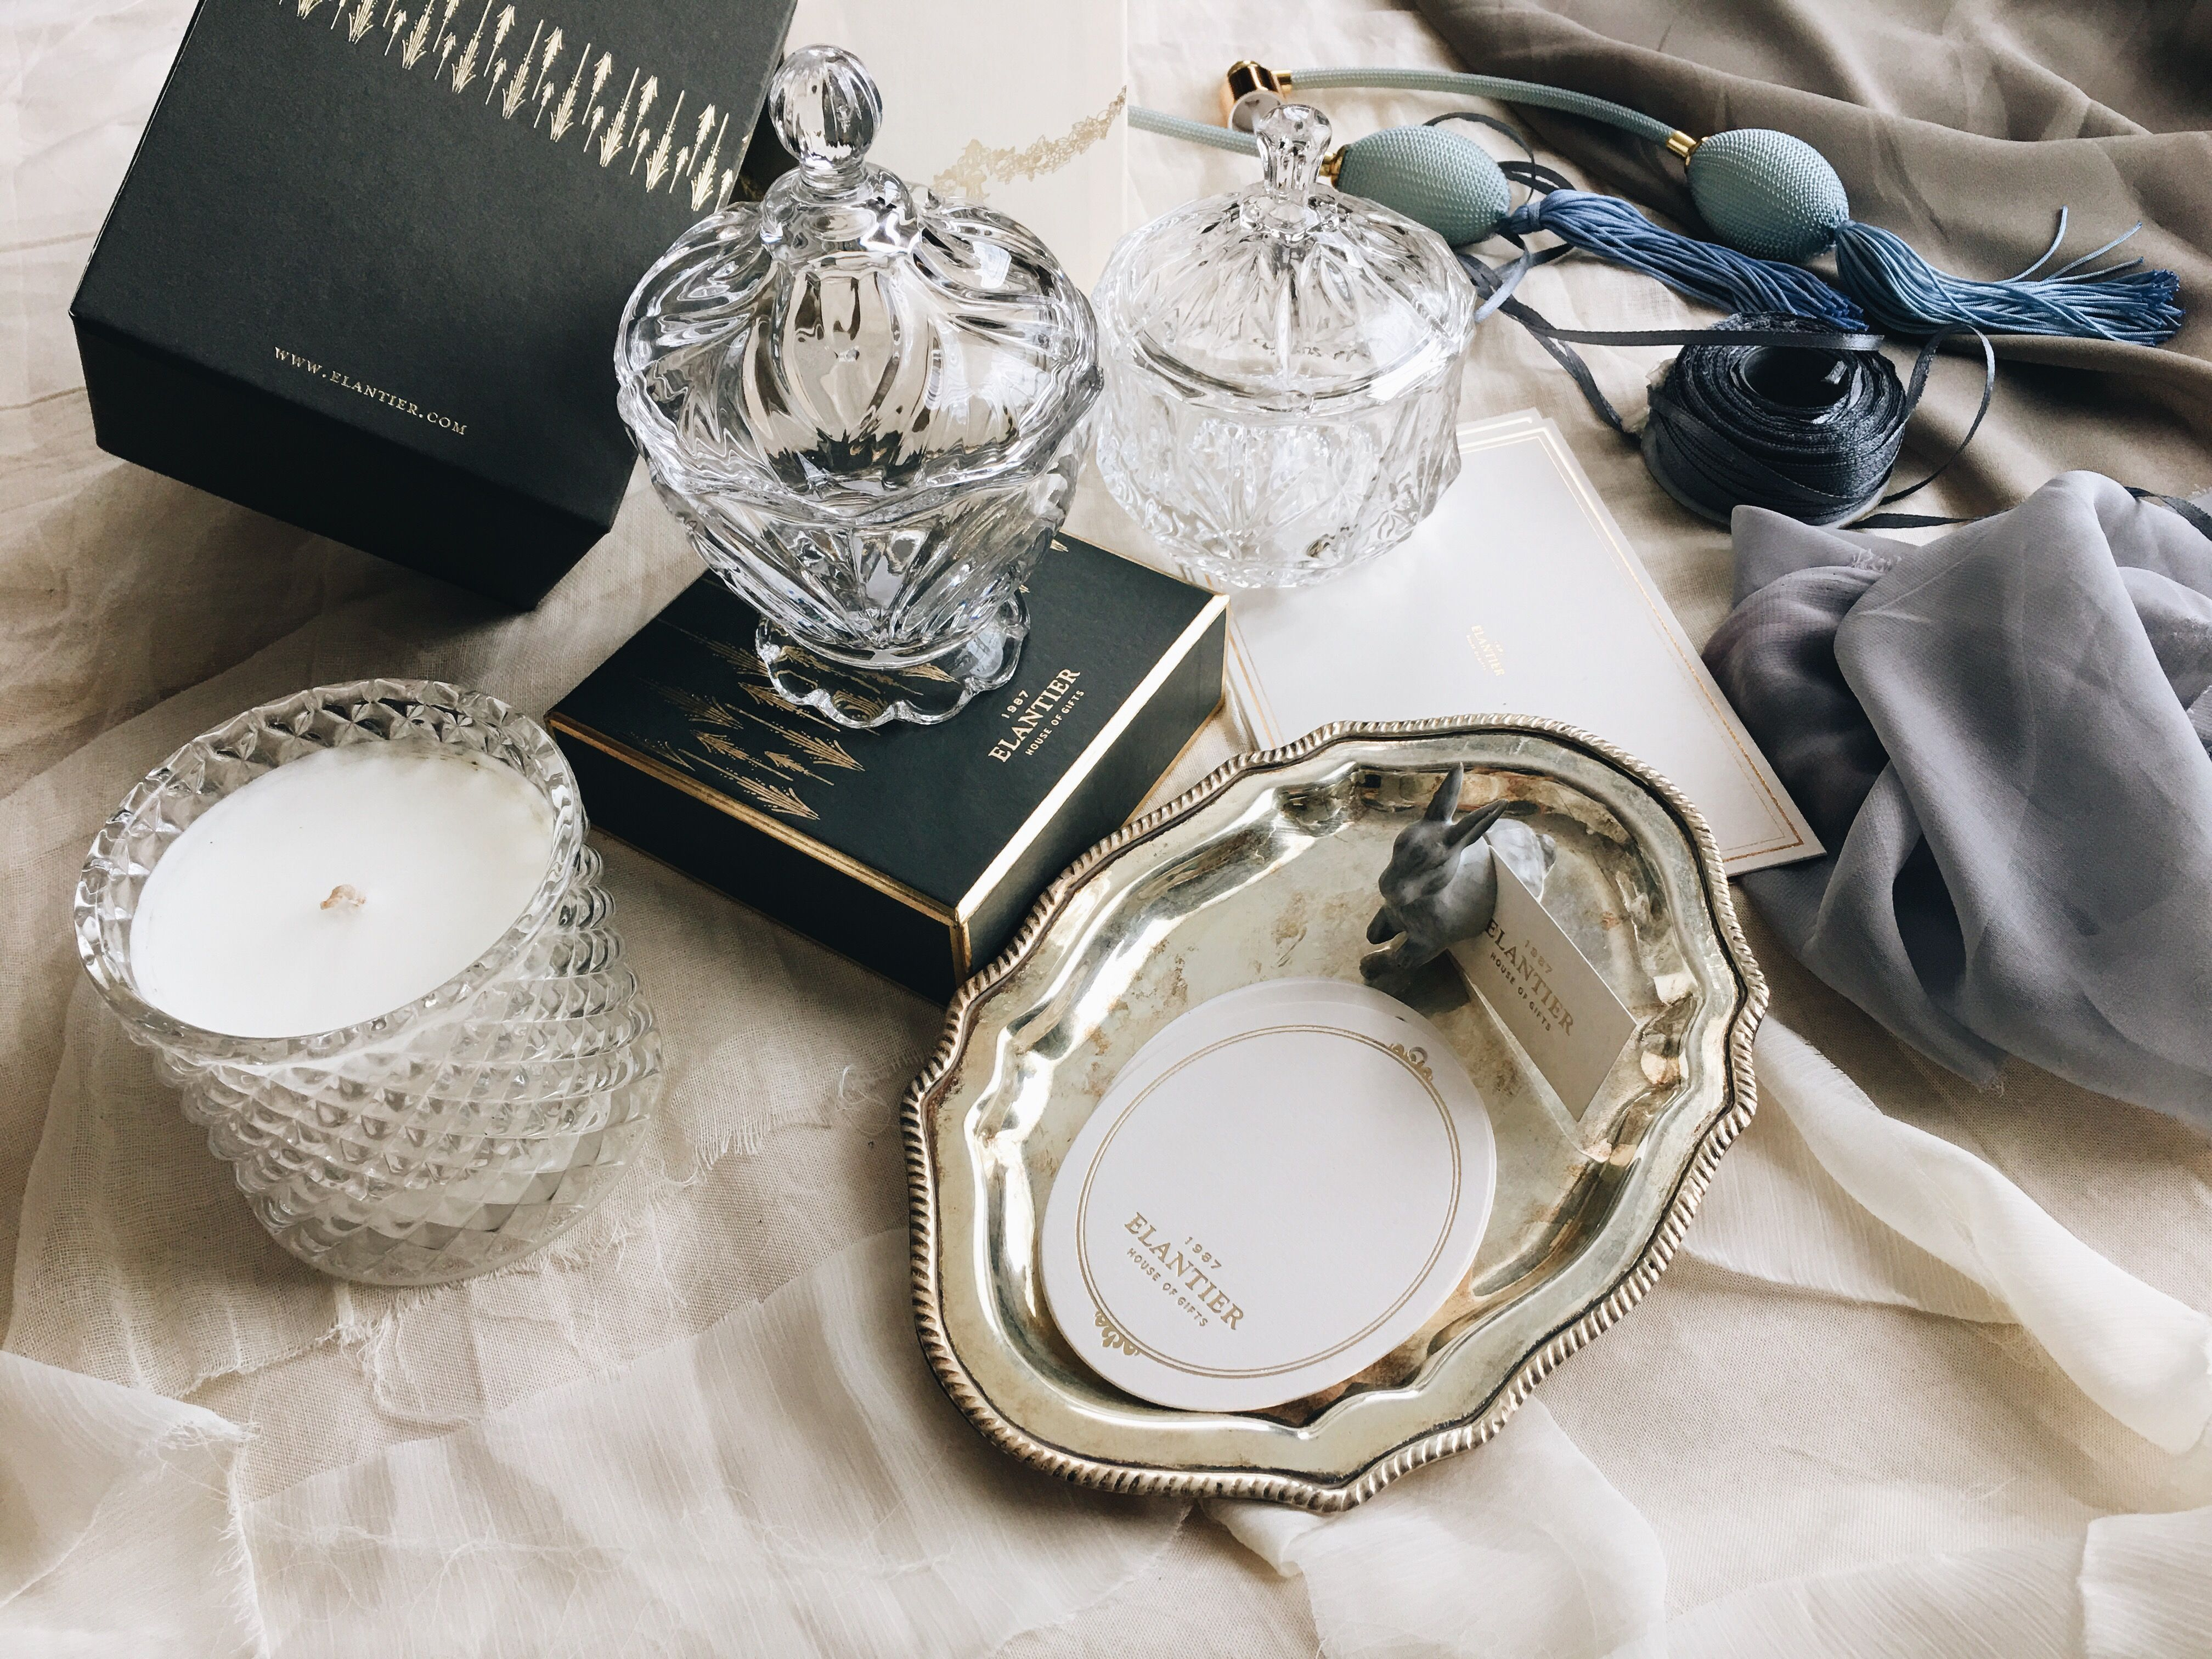 An Interview With Elantier The Purveyor Of Luxury Wedding Gifts